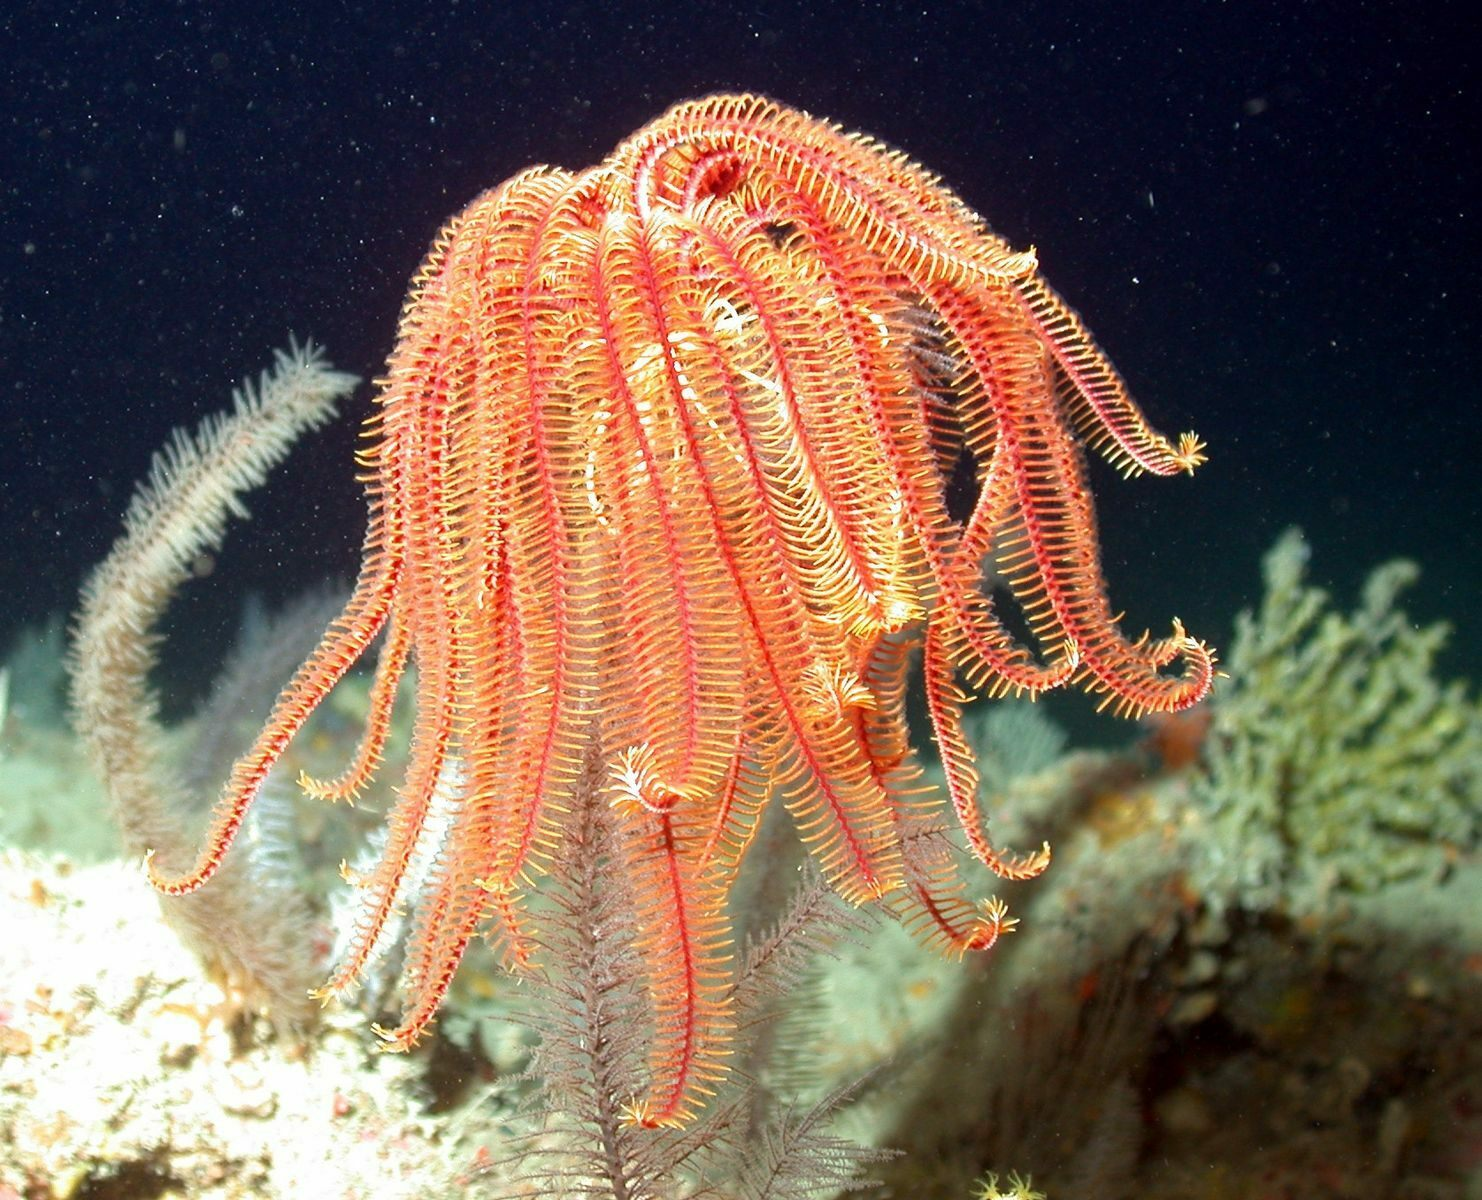 About Crinoids